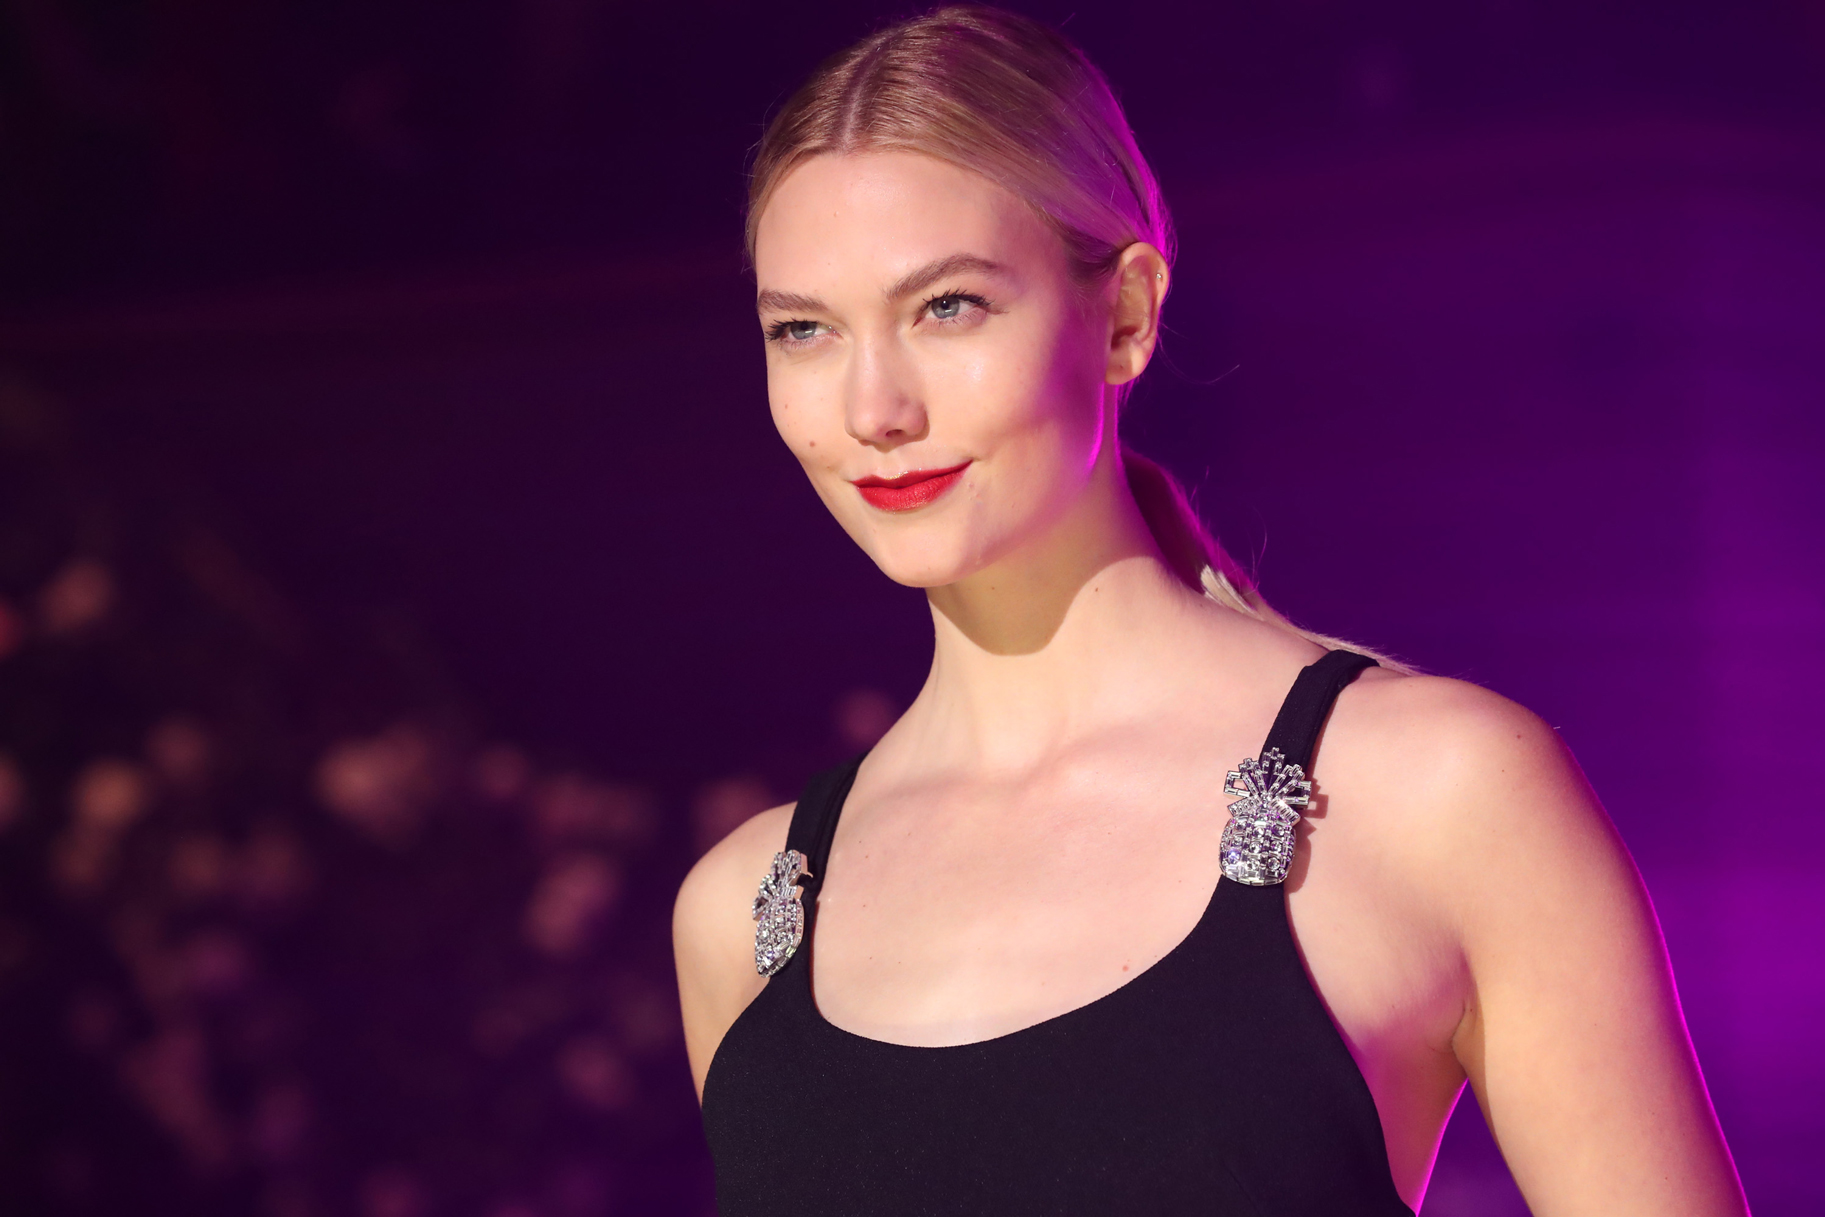 Karlie Kloss Project Runway Career